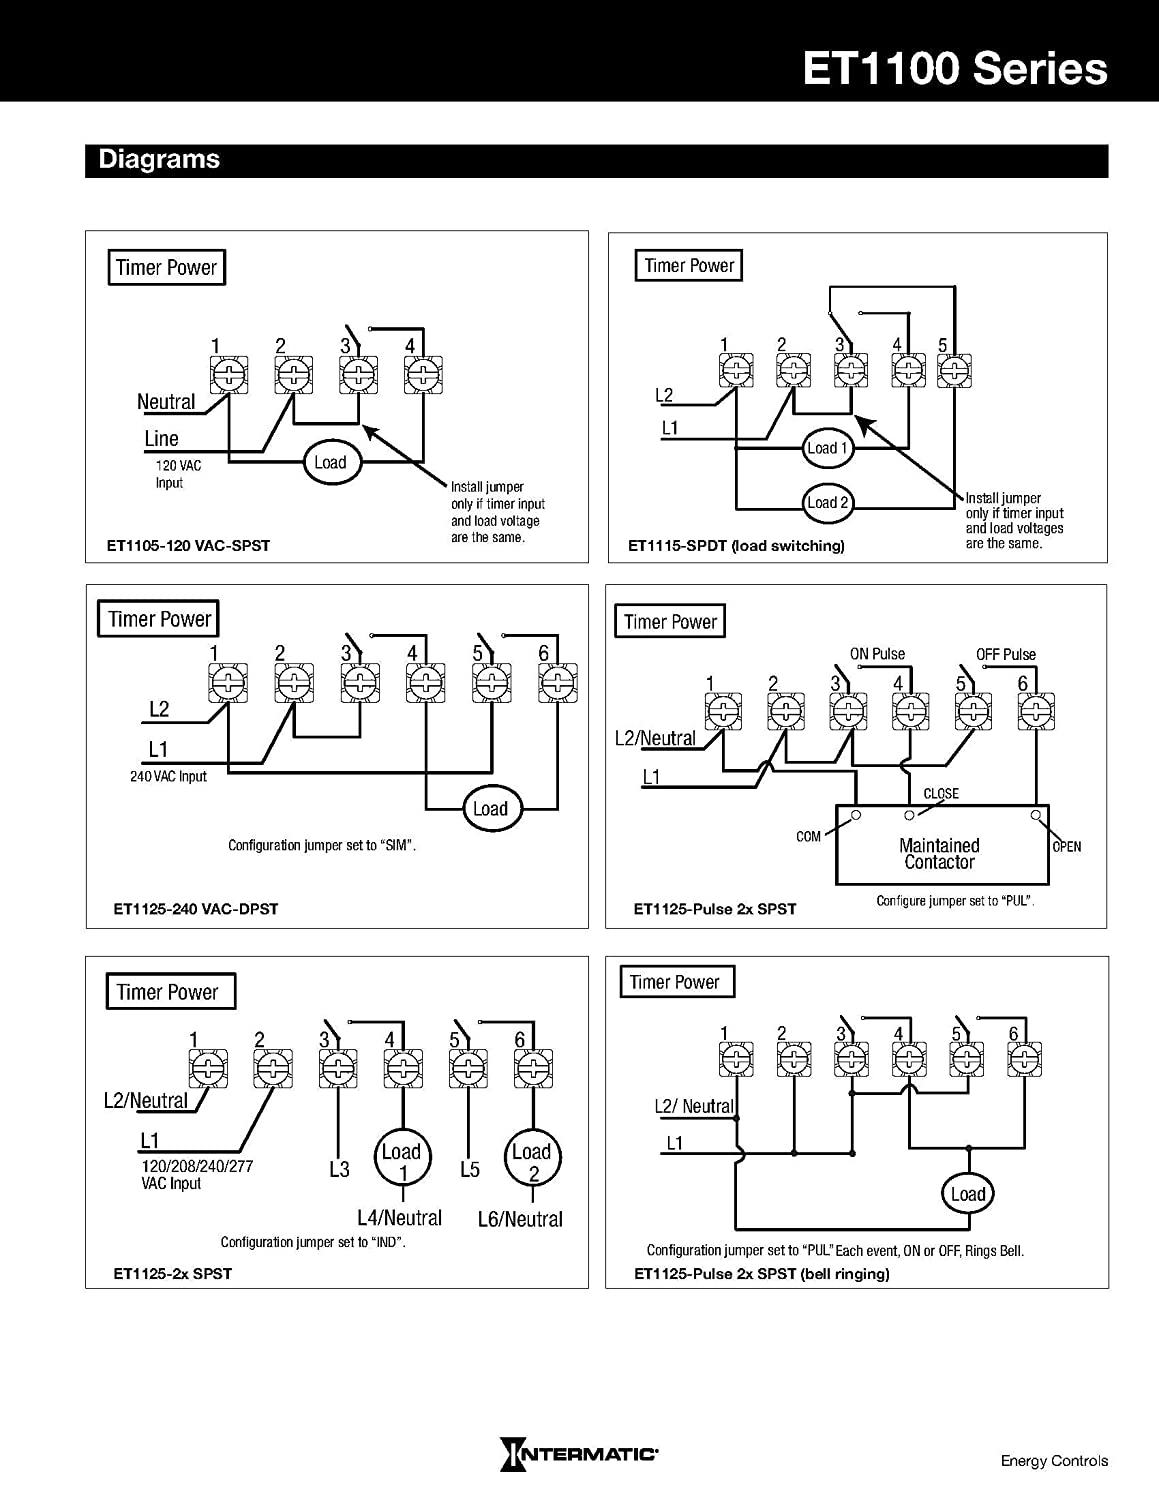 277 Volt Wiring Diagram 240 Volt Photocell Wiring Diagram 277 Volt